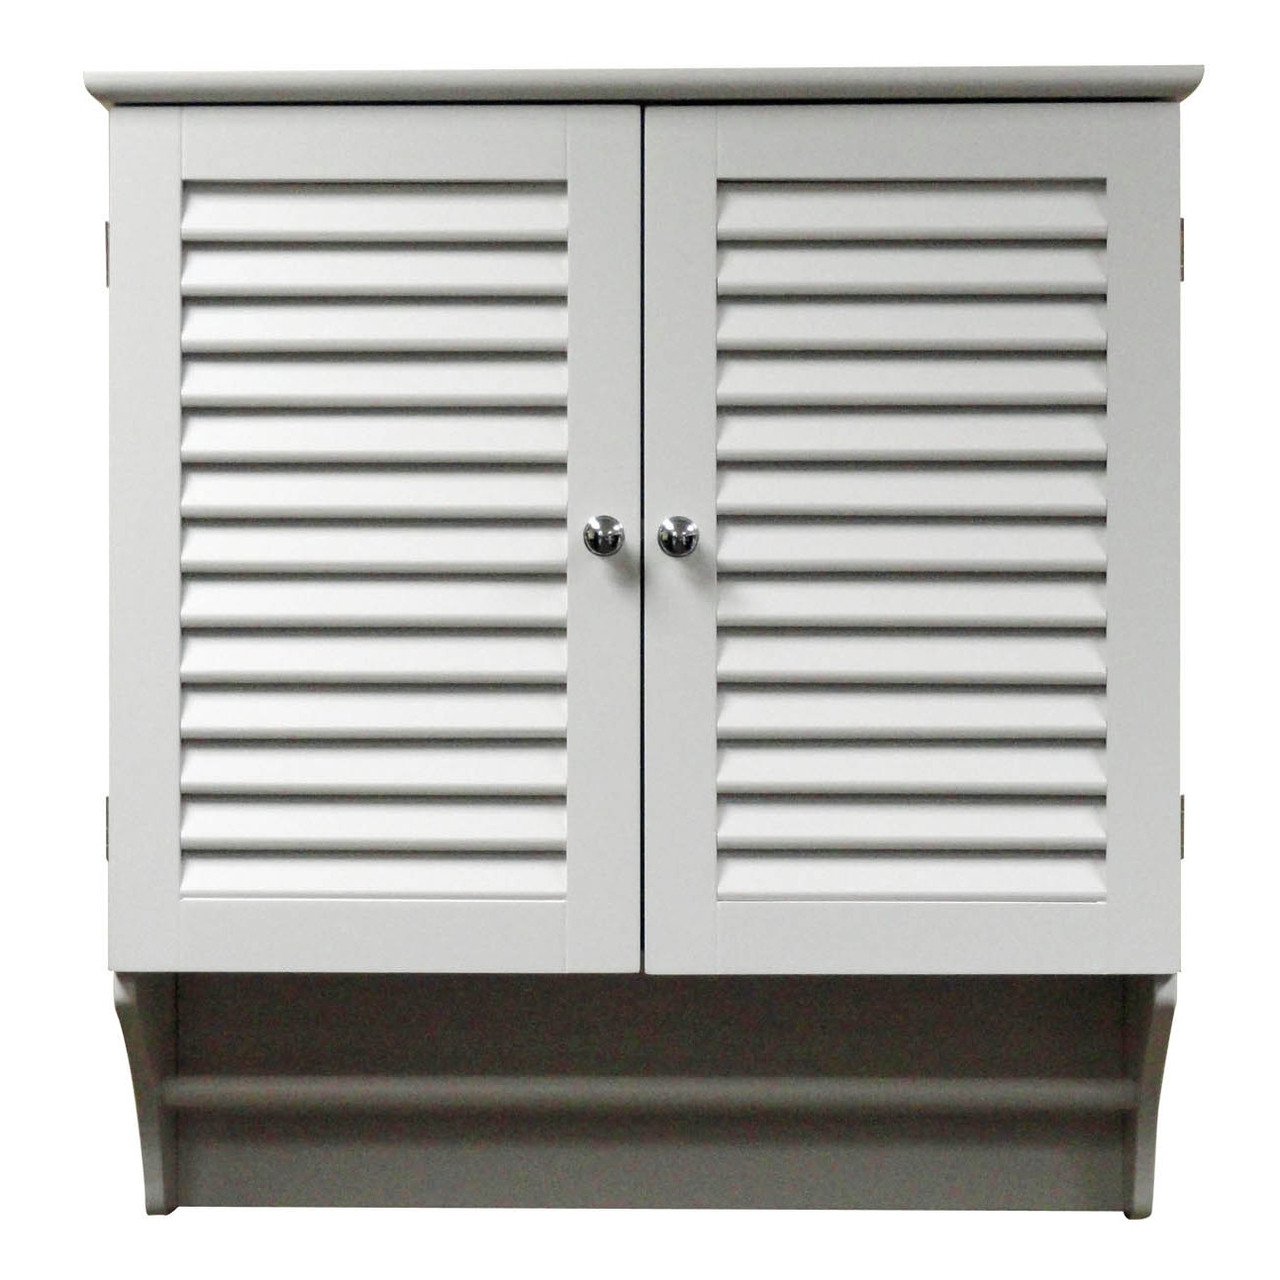 Wall mounted bathroom cabinet with shelves and towel bar - Bathroom wall cabinet with towel bar ...